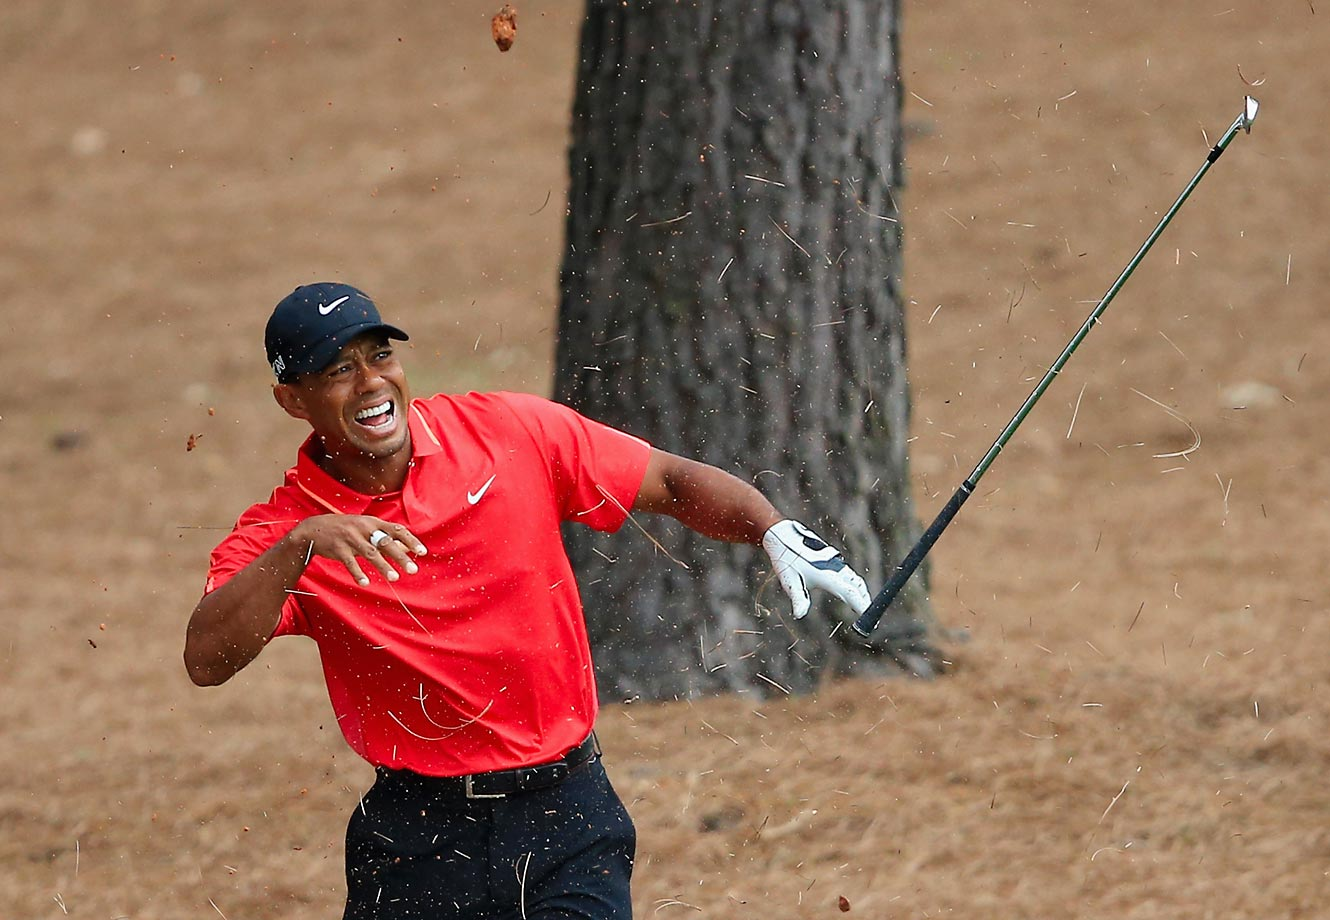 Tiger Woods winces in pain after making a shot on the ninth hole during the final round of the Masters. Tiger finished the tournament tied for 17th at five-under par.